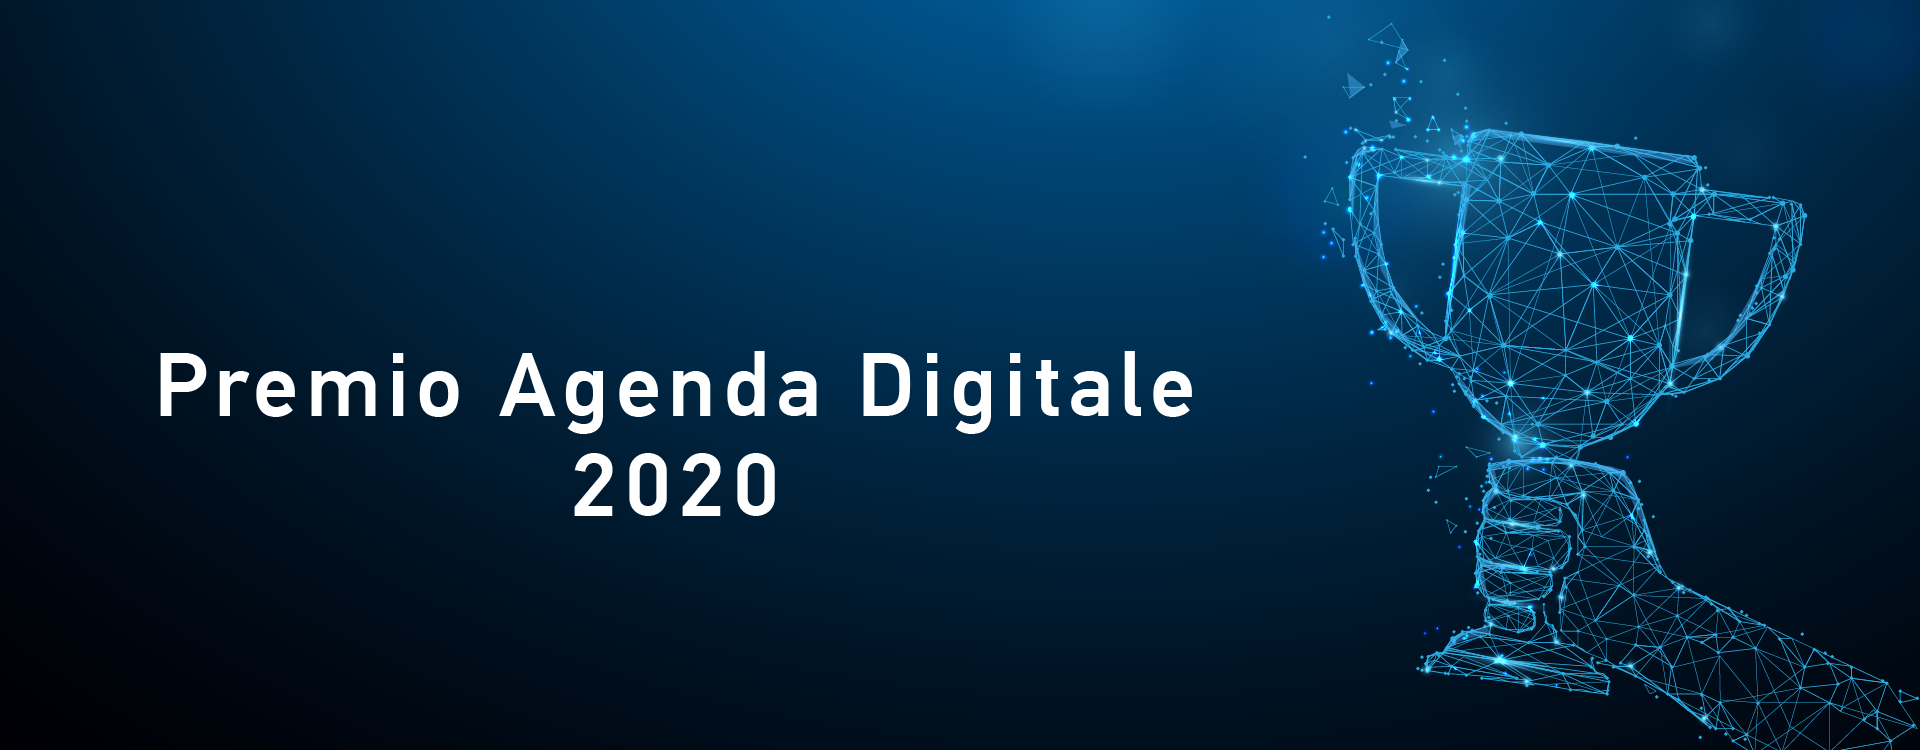 Area Science Park vince Agenda Digitale 2020 con IP4FVG